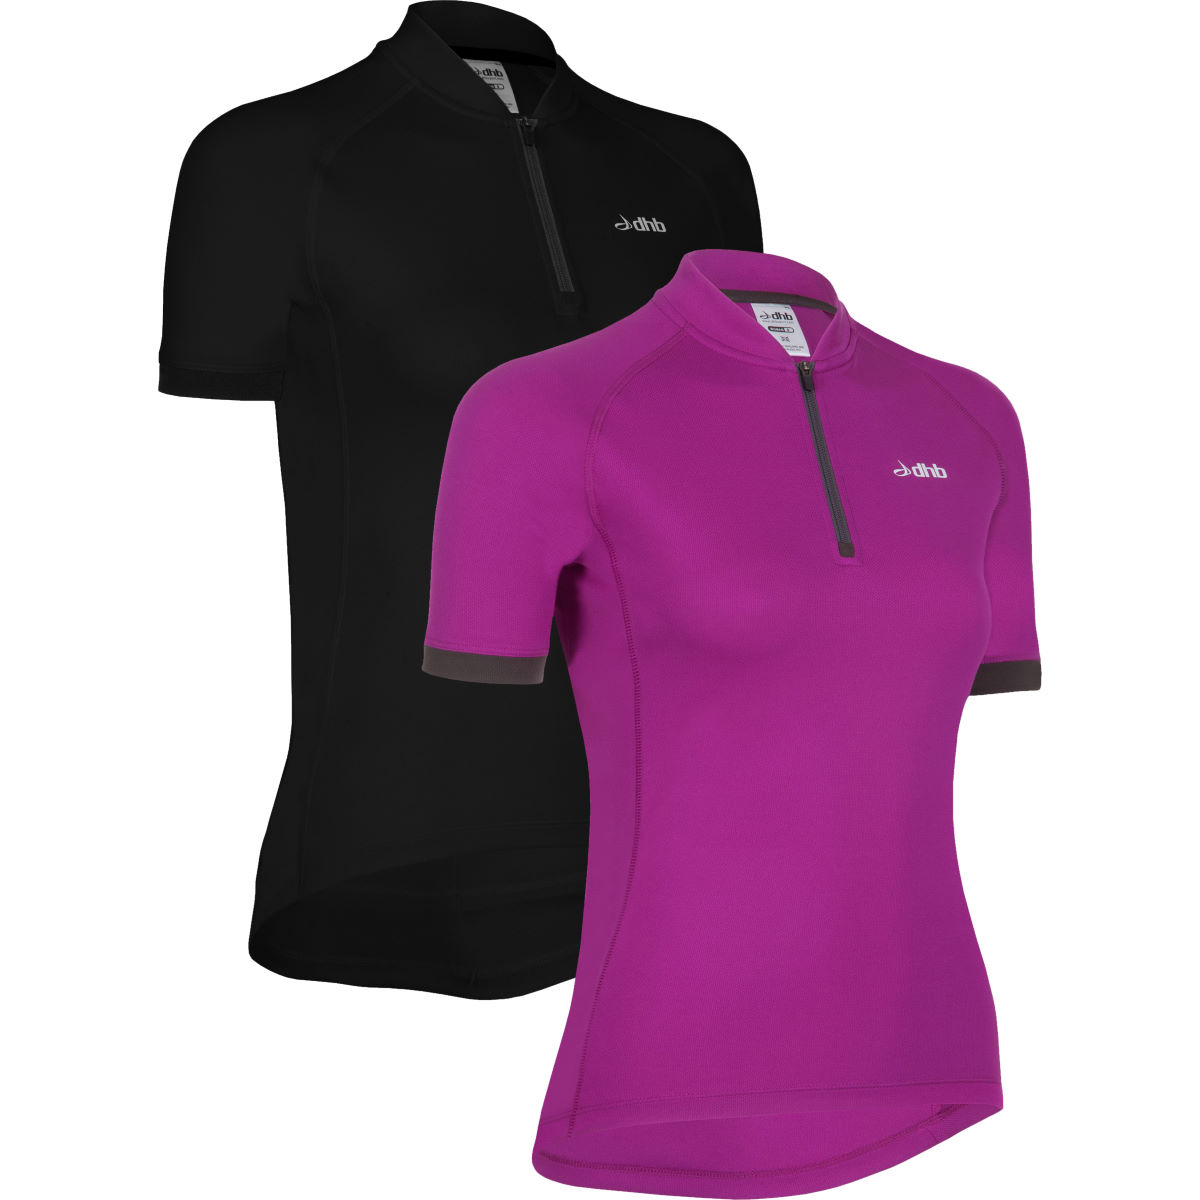 dhb Women's Active S/S Cycling Jersey-Pack of 2